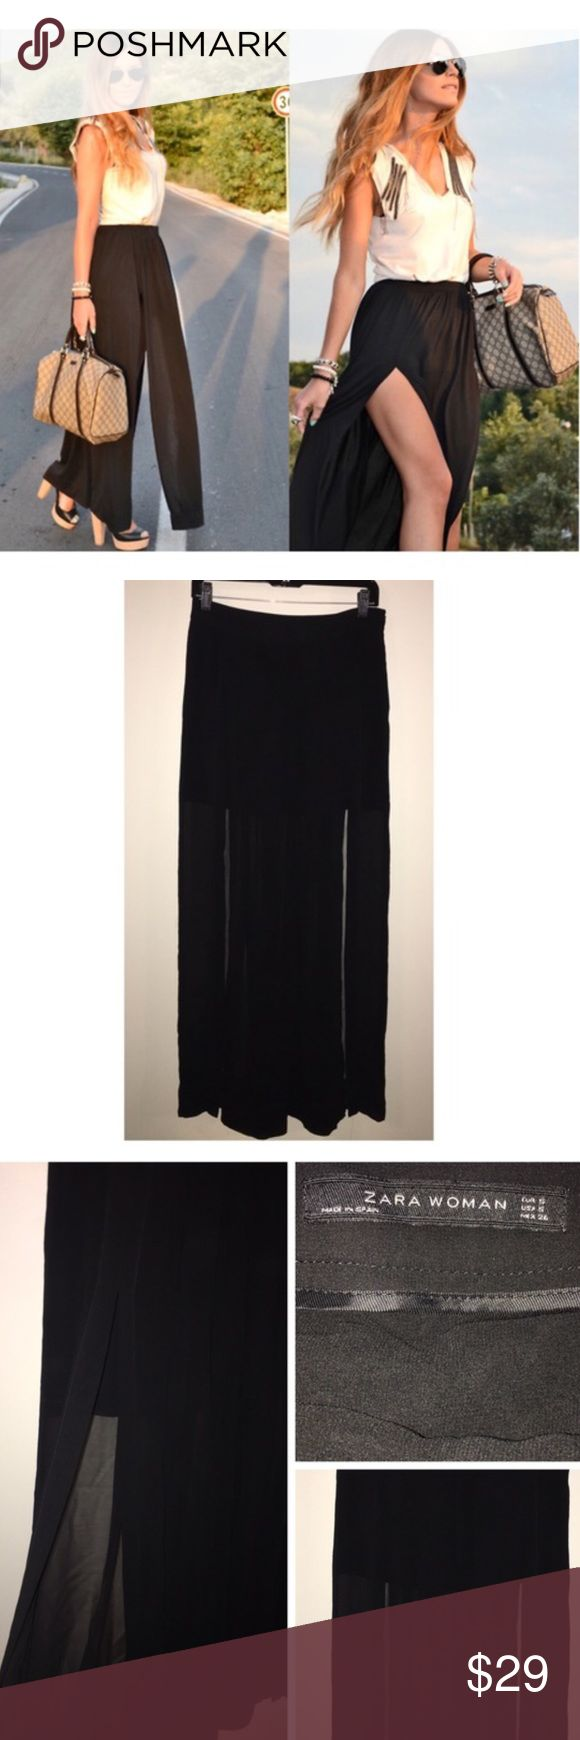 Zara black double slit M slit maxi skirt small In great condition. Side zipper. Sheer panels with 2 front slits. From Zara, size small. Zara Skirts Maxi